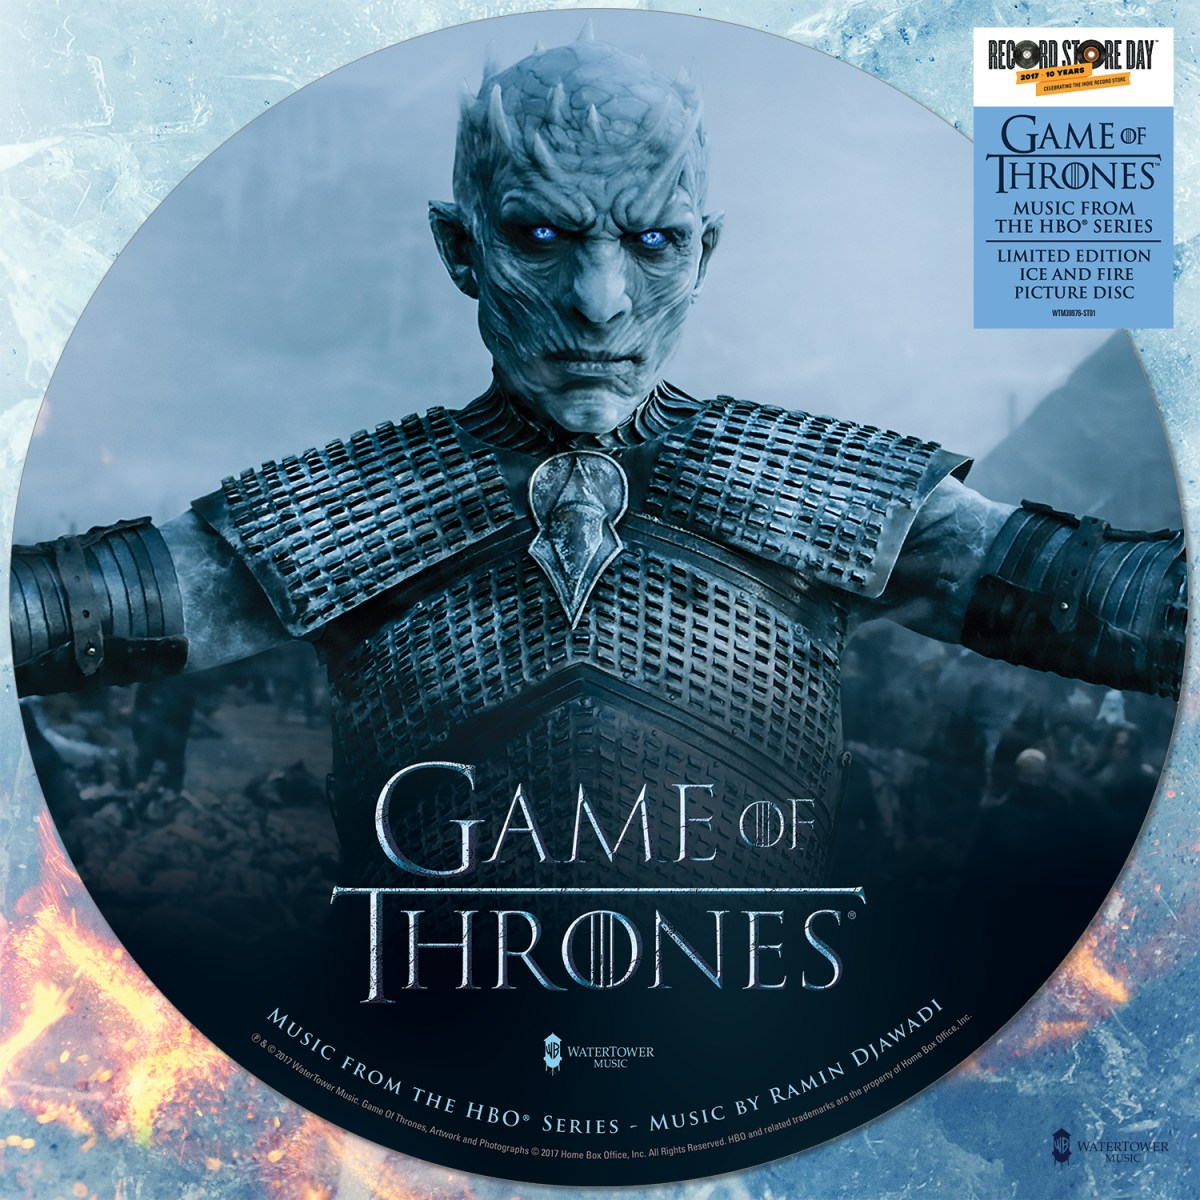 Game Of Thrones Music From The HBO Series Limited Edition Vinyl